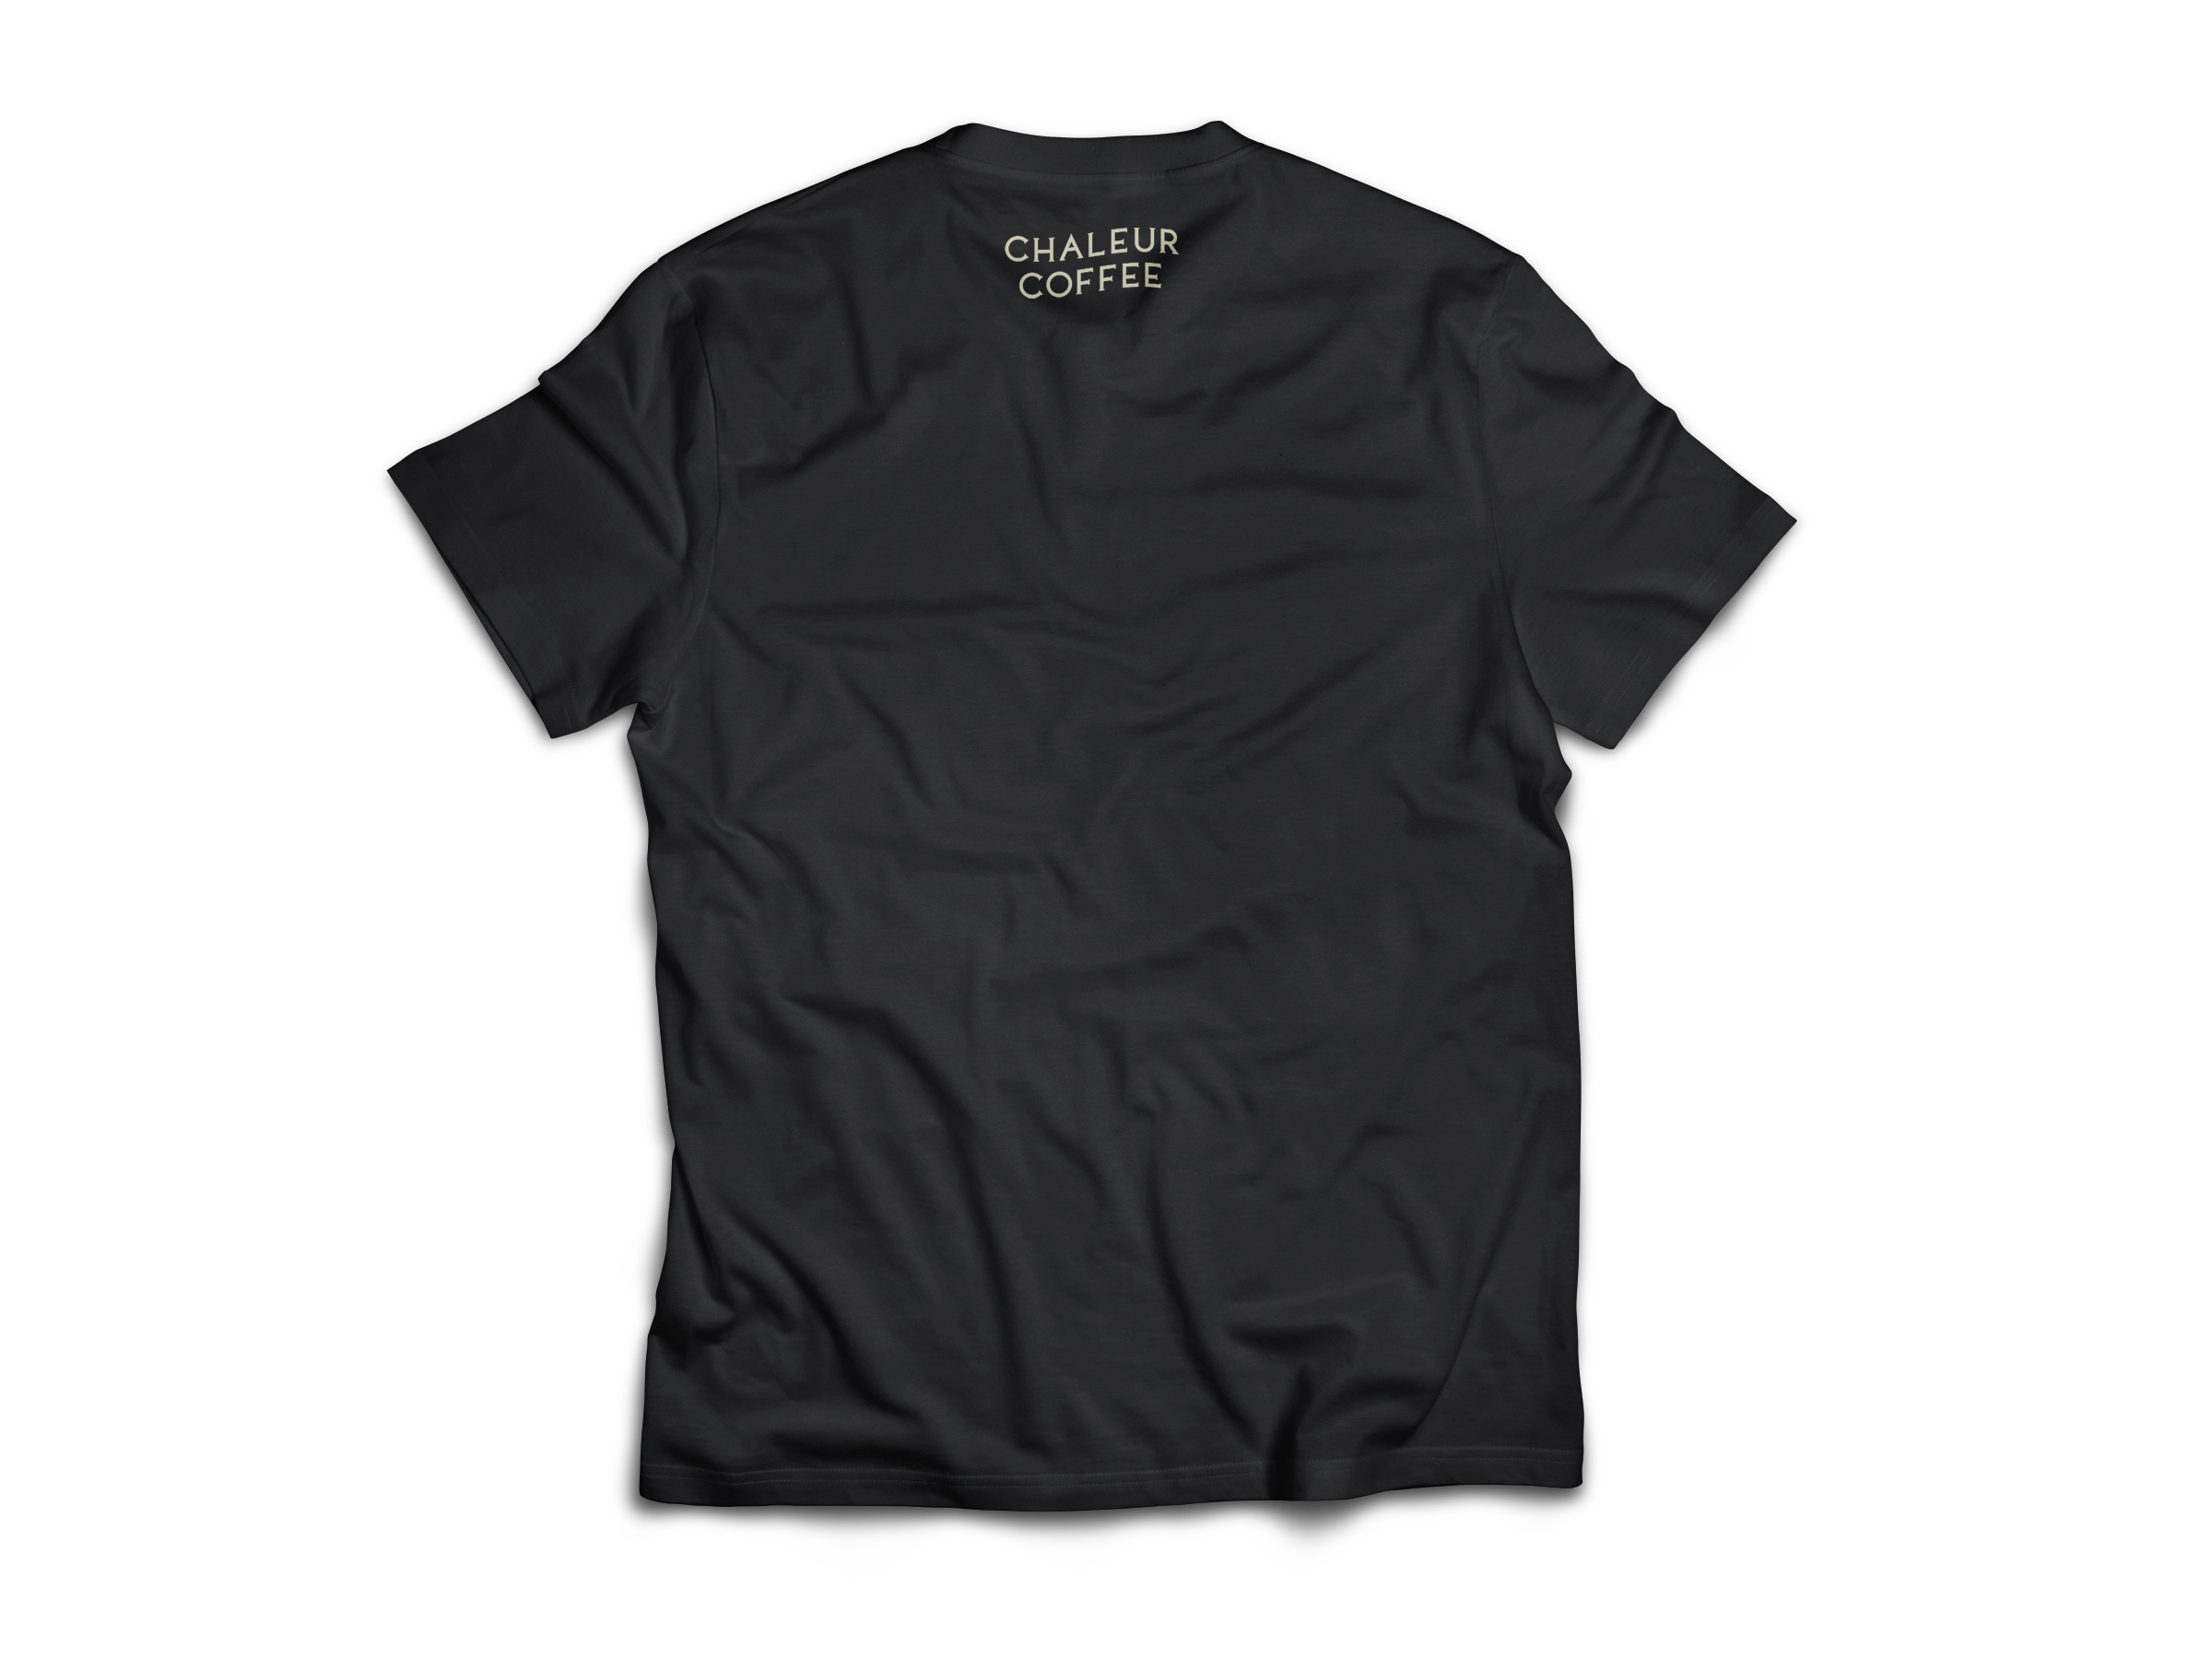 It's Just Coffee Short Sleeve Shirt - Black